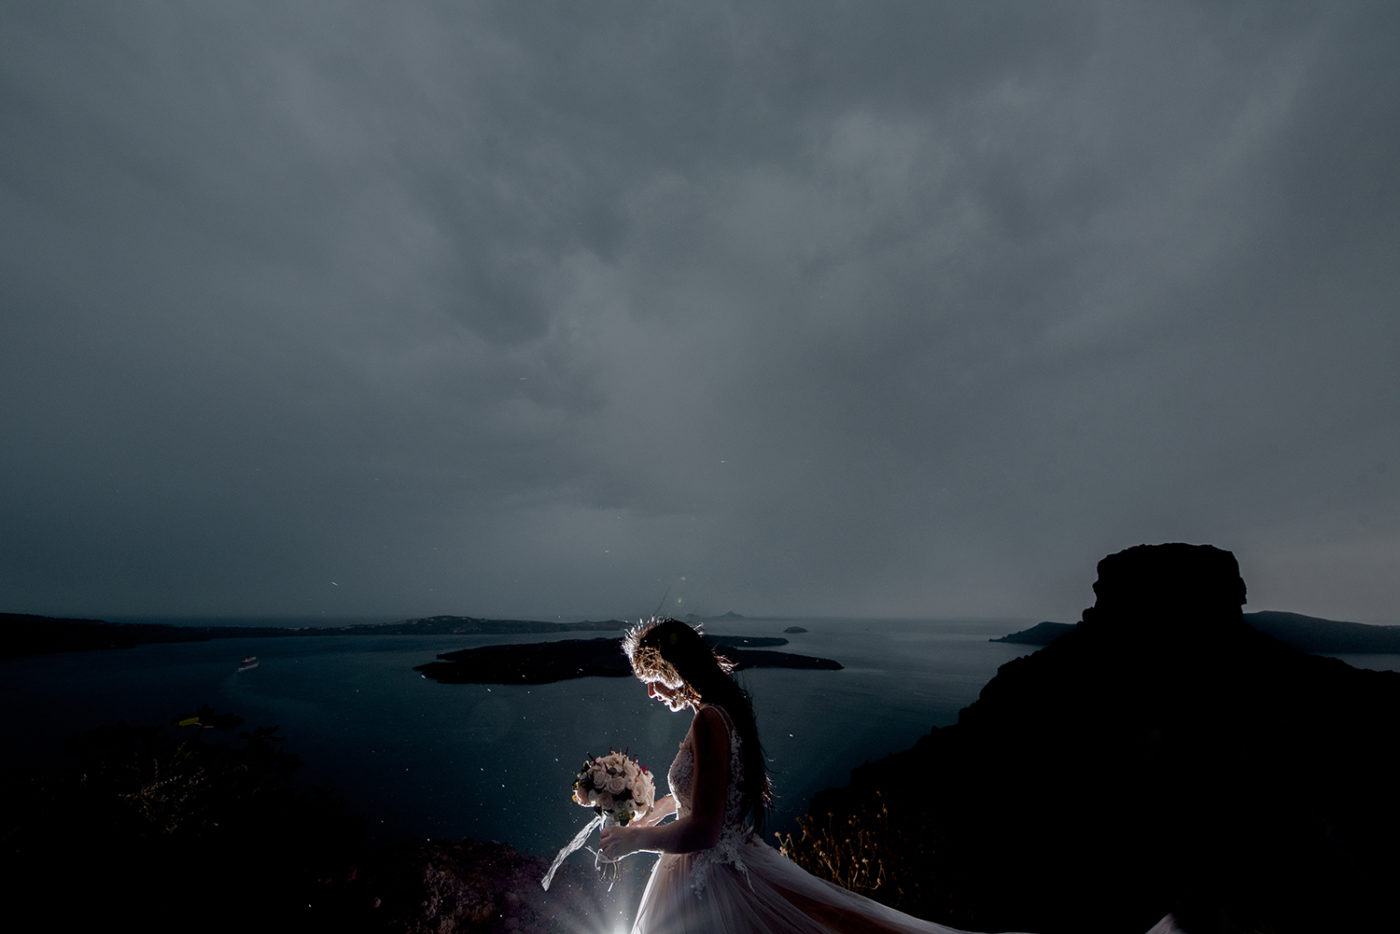 Yiannis-Sissy-Santorini-Wedding-Photography-by-Kirill-Samarits (2)